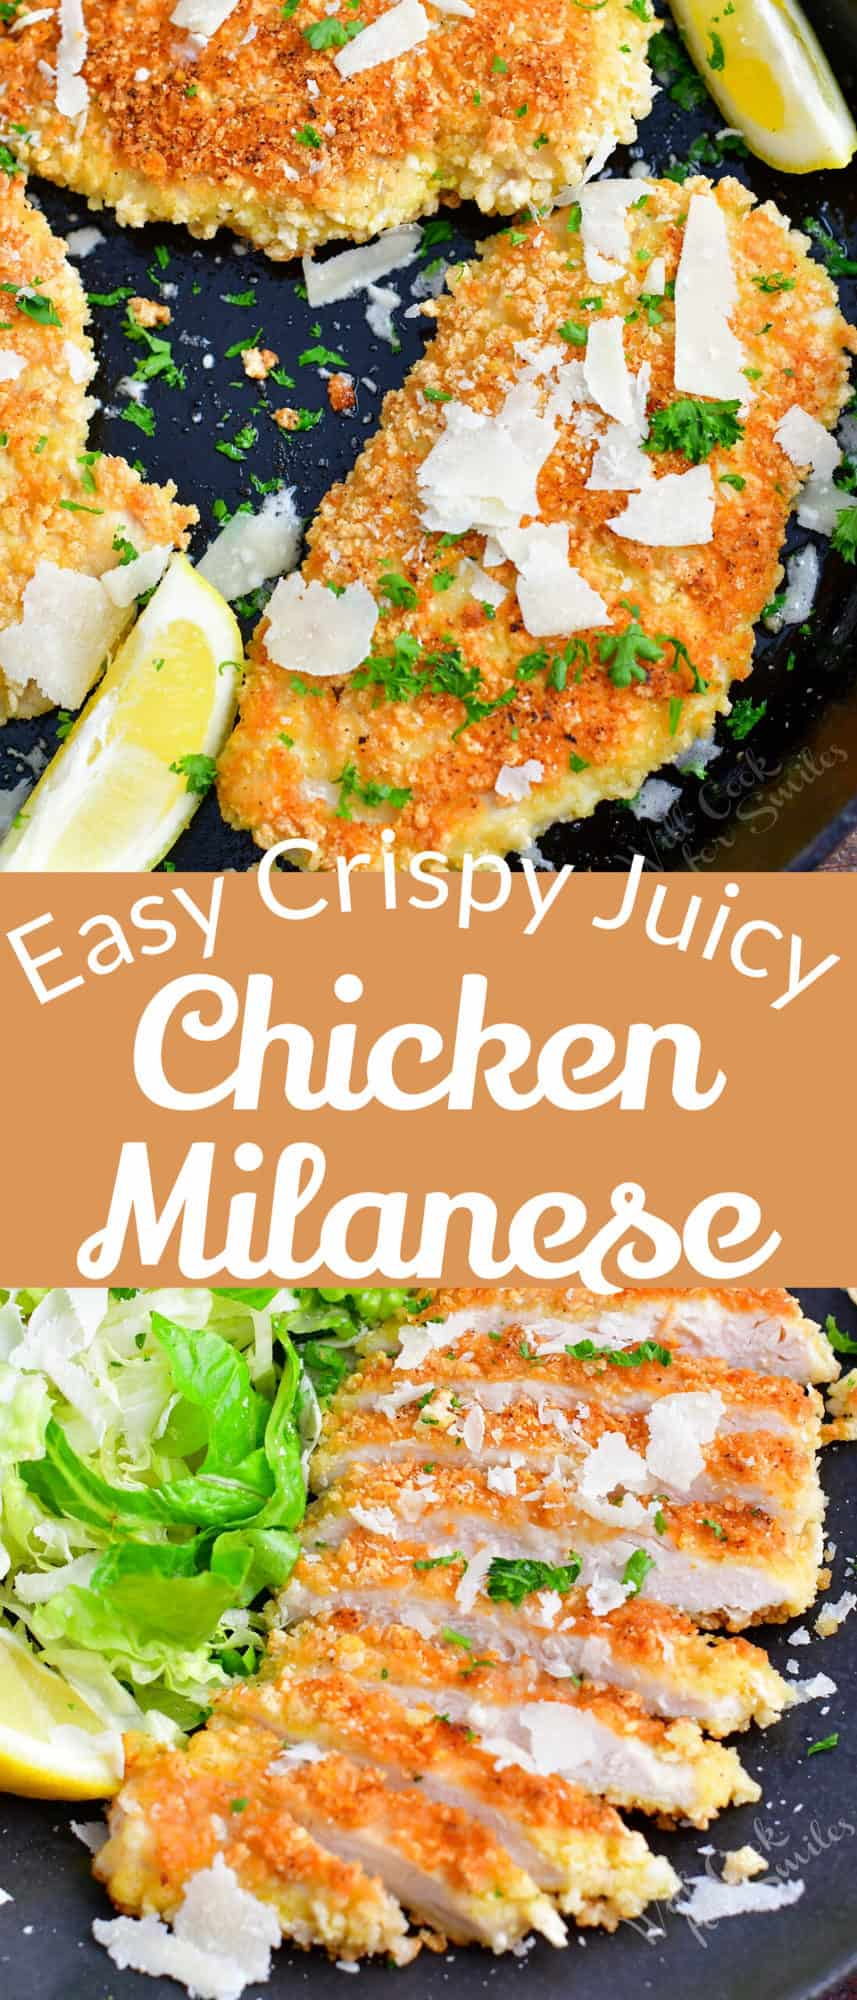 collage of two images of crispy chicken Milanese in a pan and sliced cooked chicken on a plate